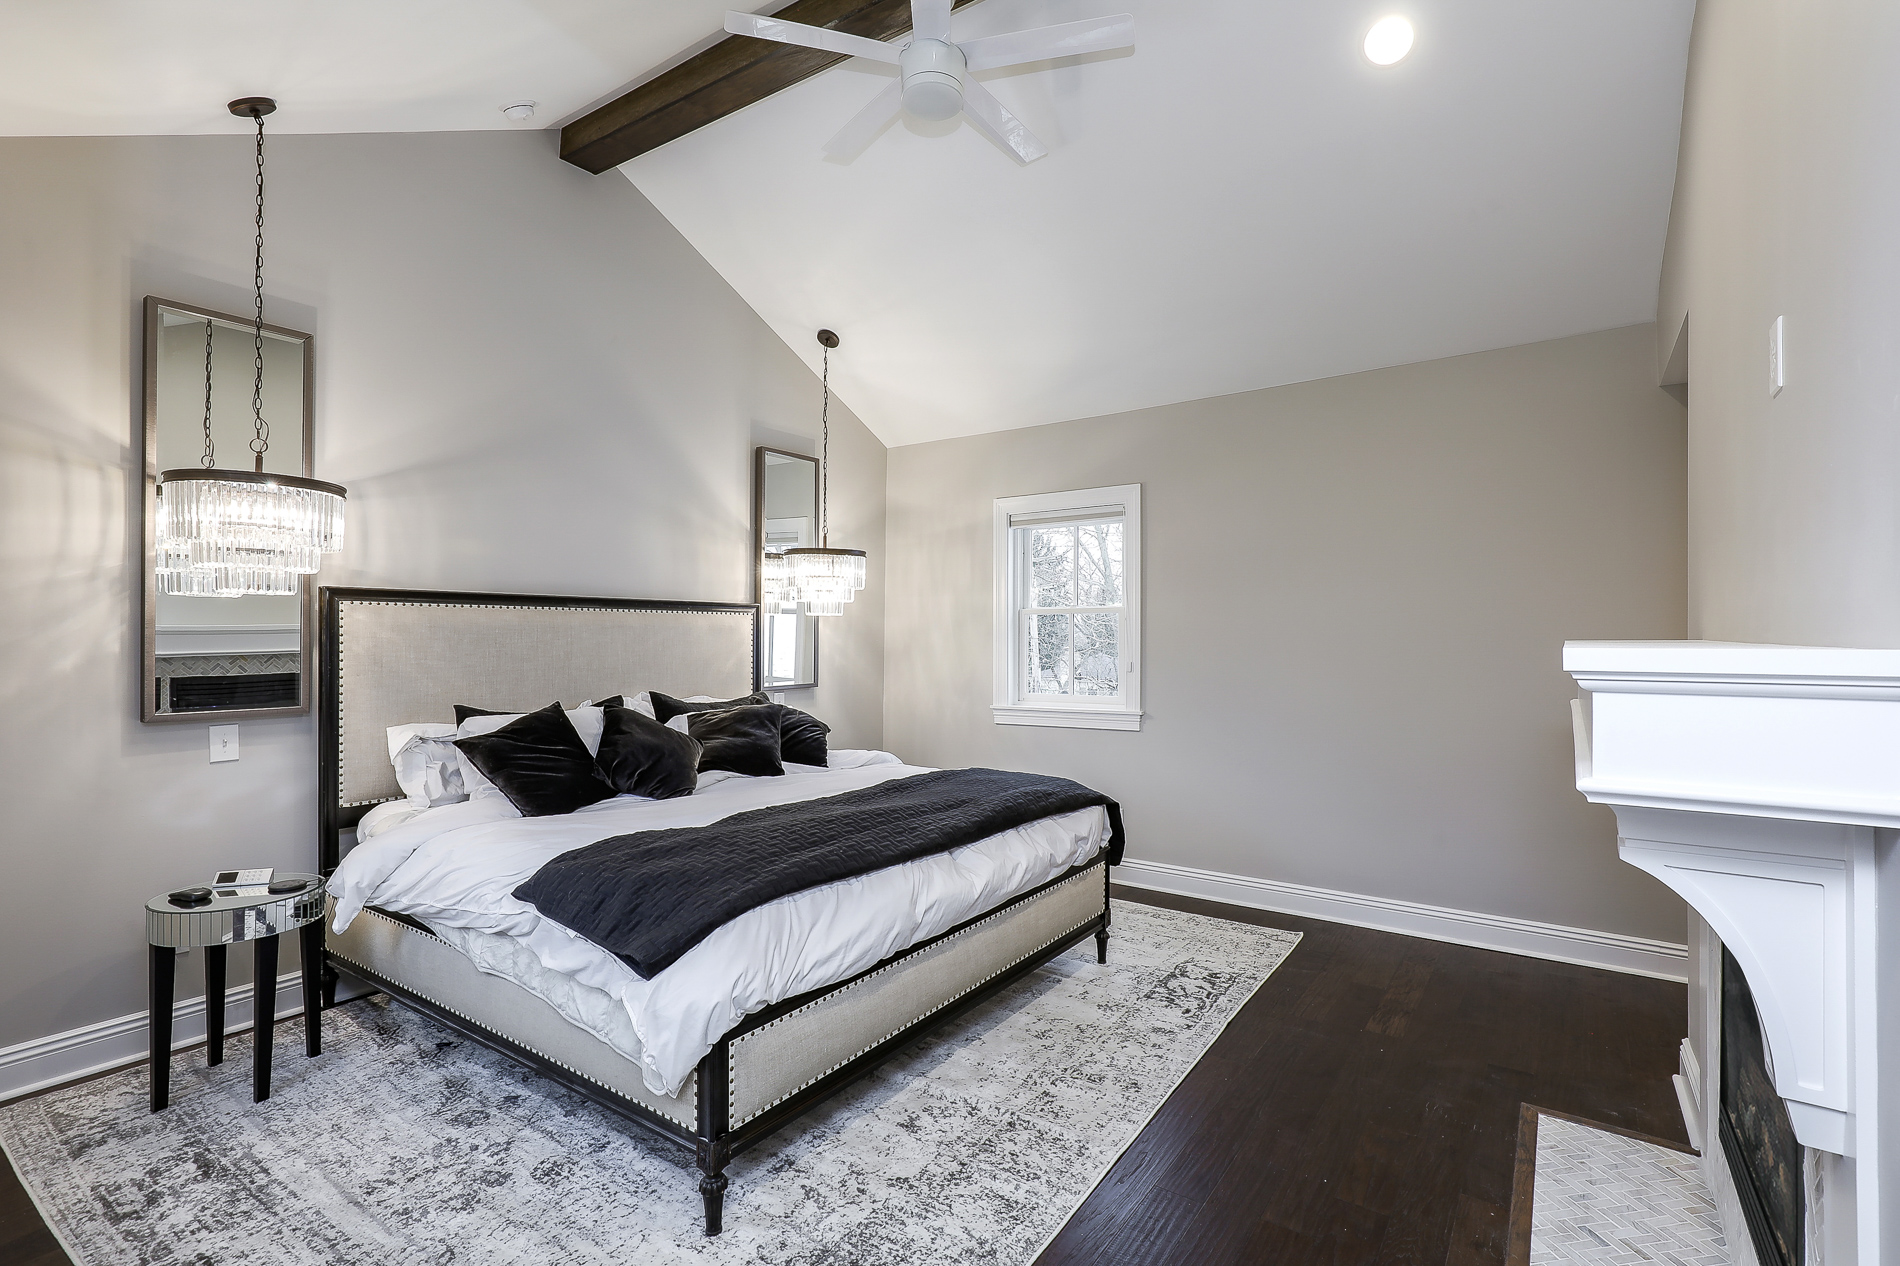 Alair-Homes-Cuyahoga-Falls-Making-Multigenerational-Living-a-Success-in-your-home-258-N-Main-St-47